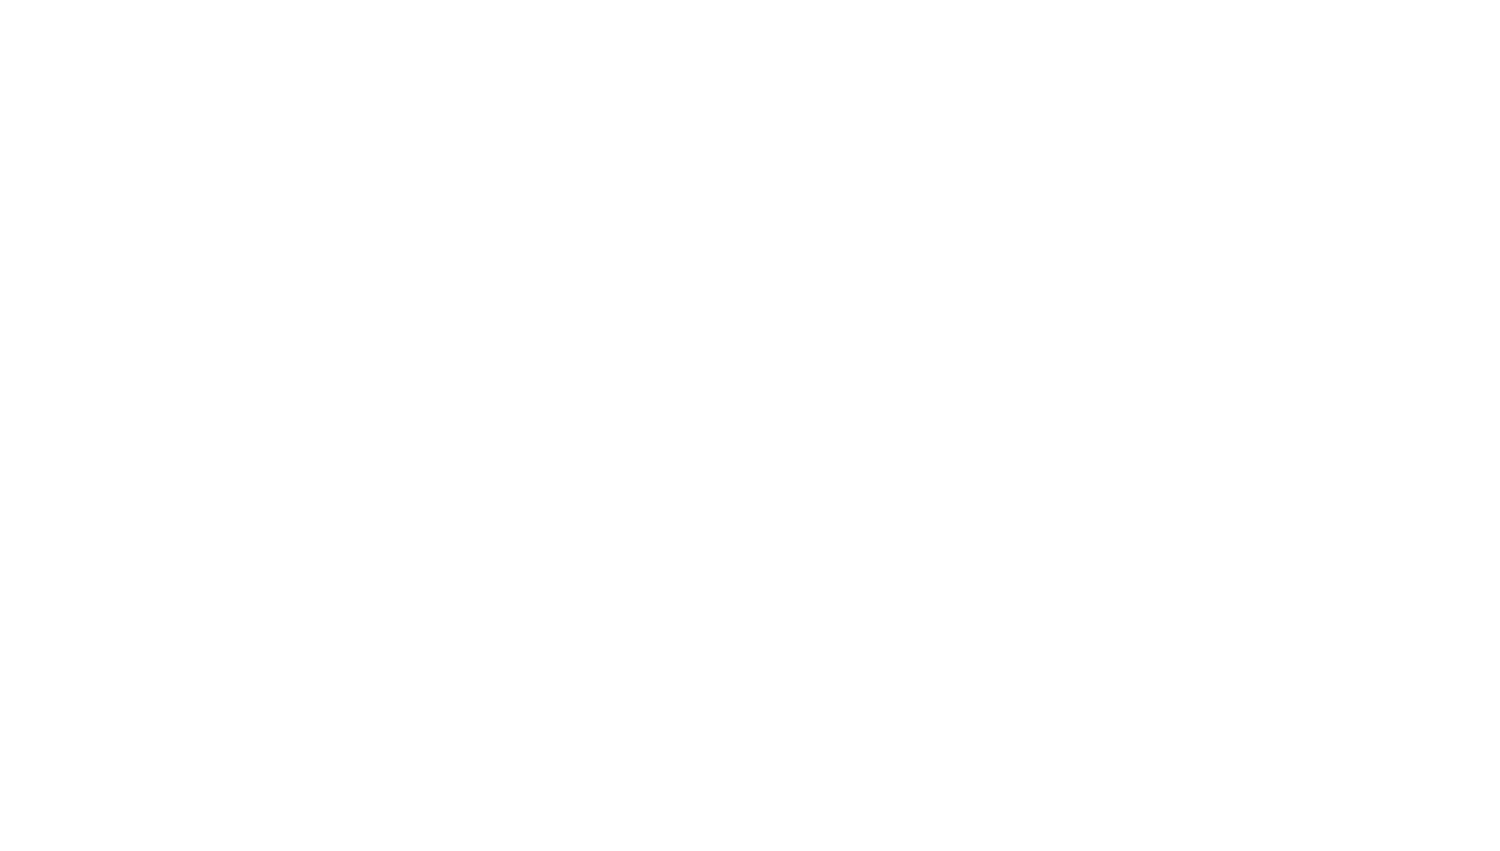 Self-Marriage